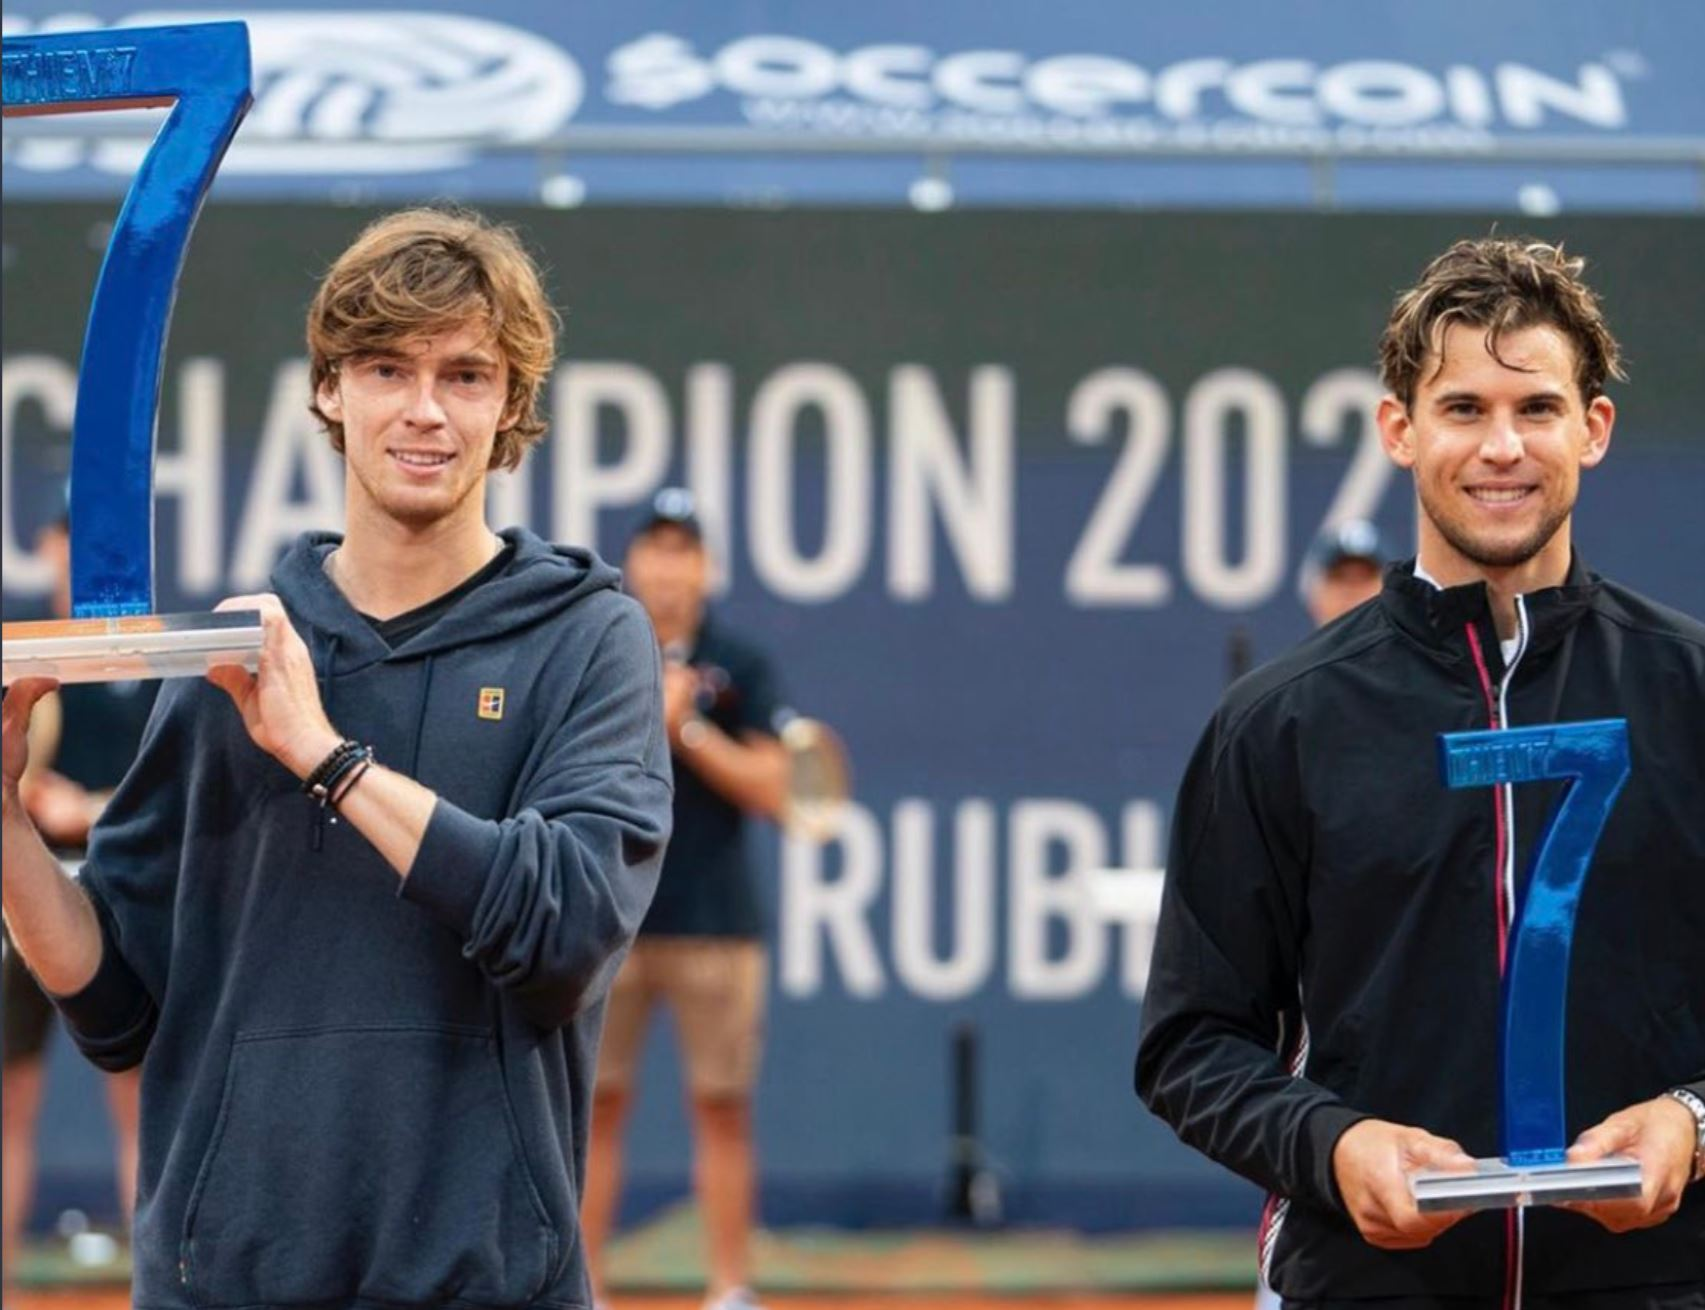 Rublev Defeats Thiem for Thiem7 Title